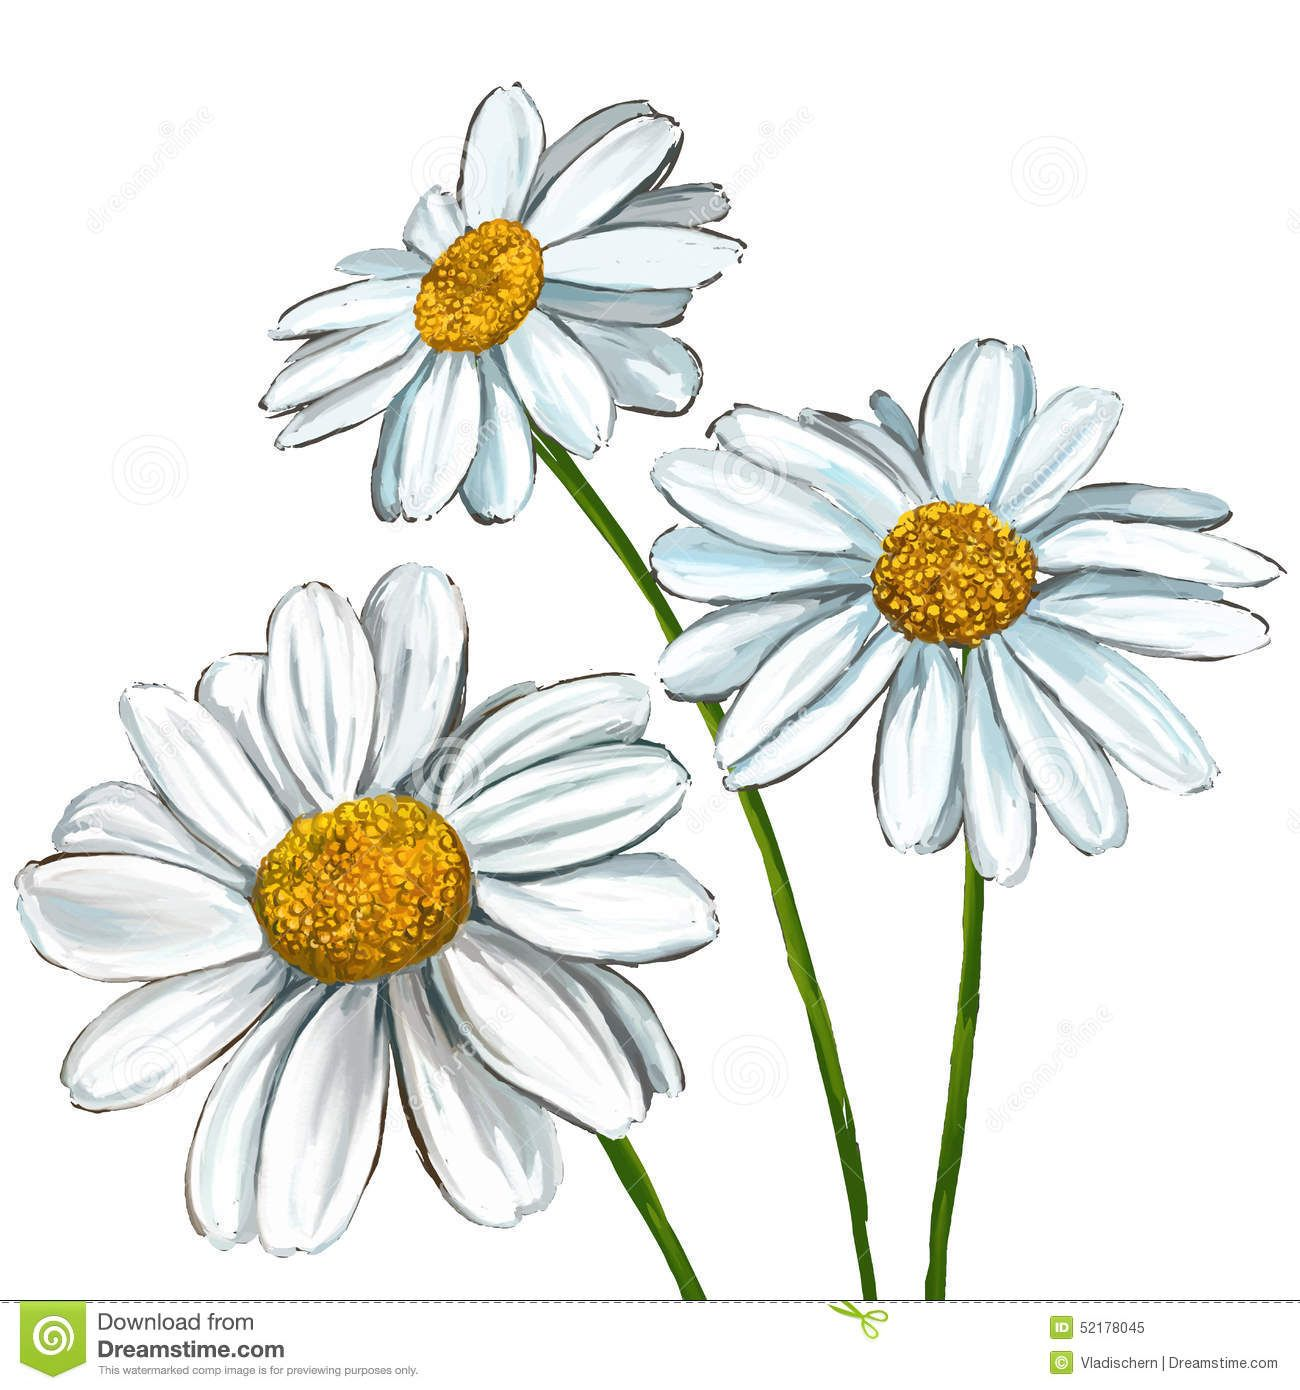 Daisy sketch watercolor google search tattoo anyone daisy sketch watercolor google search izmirmasajfo